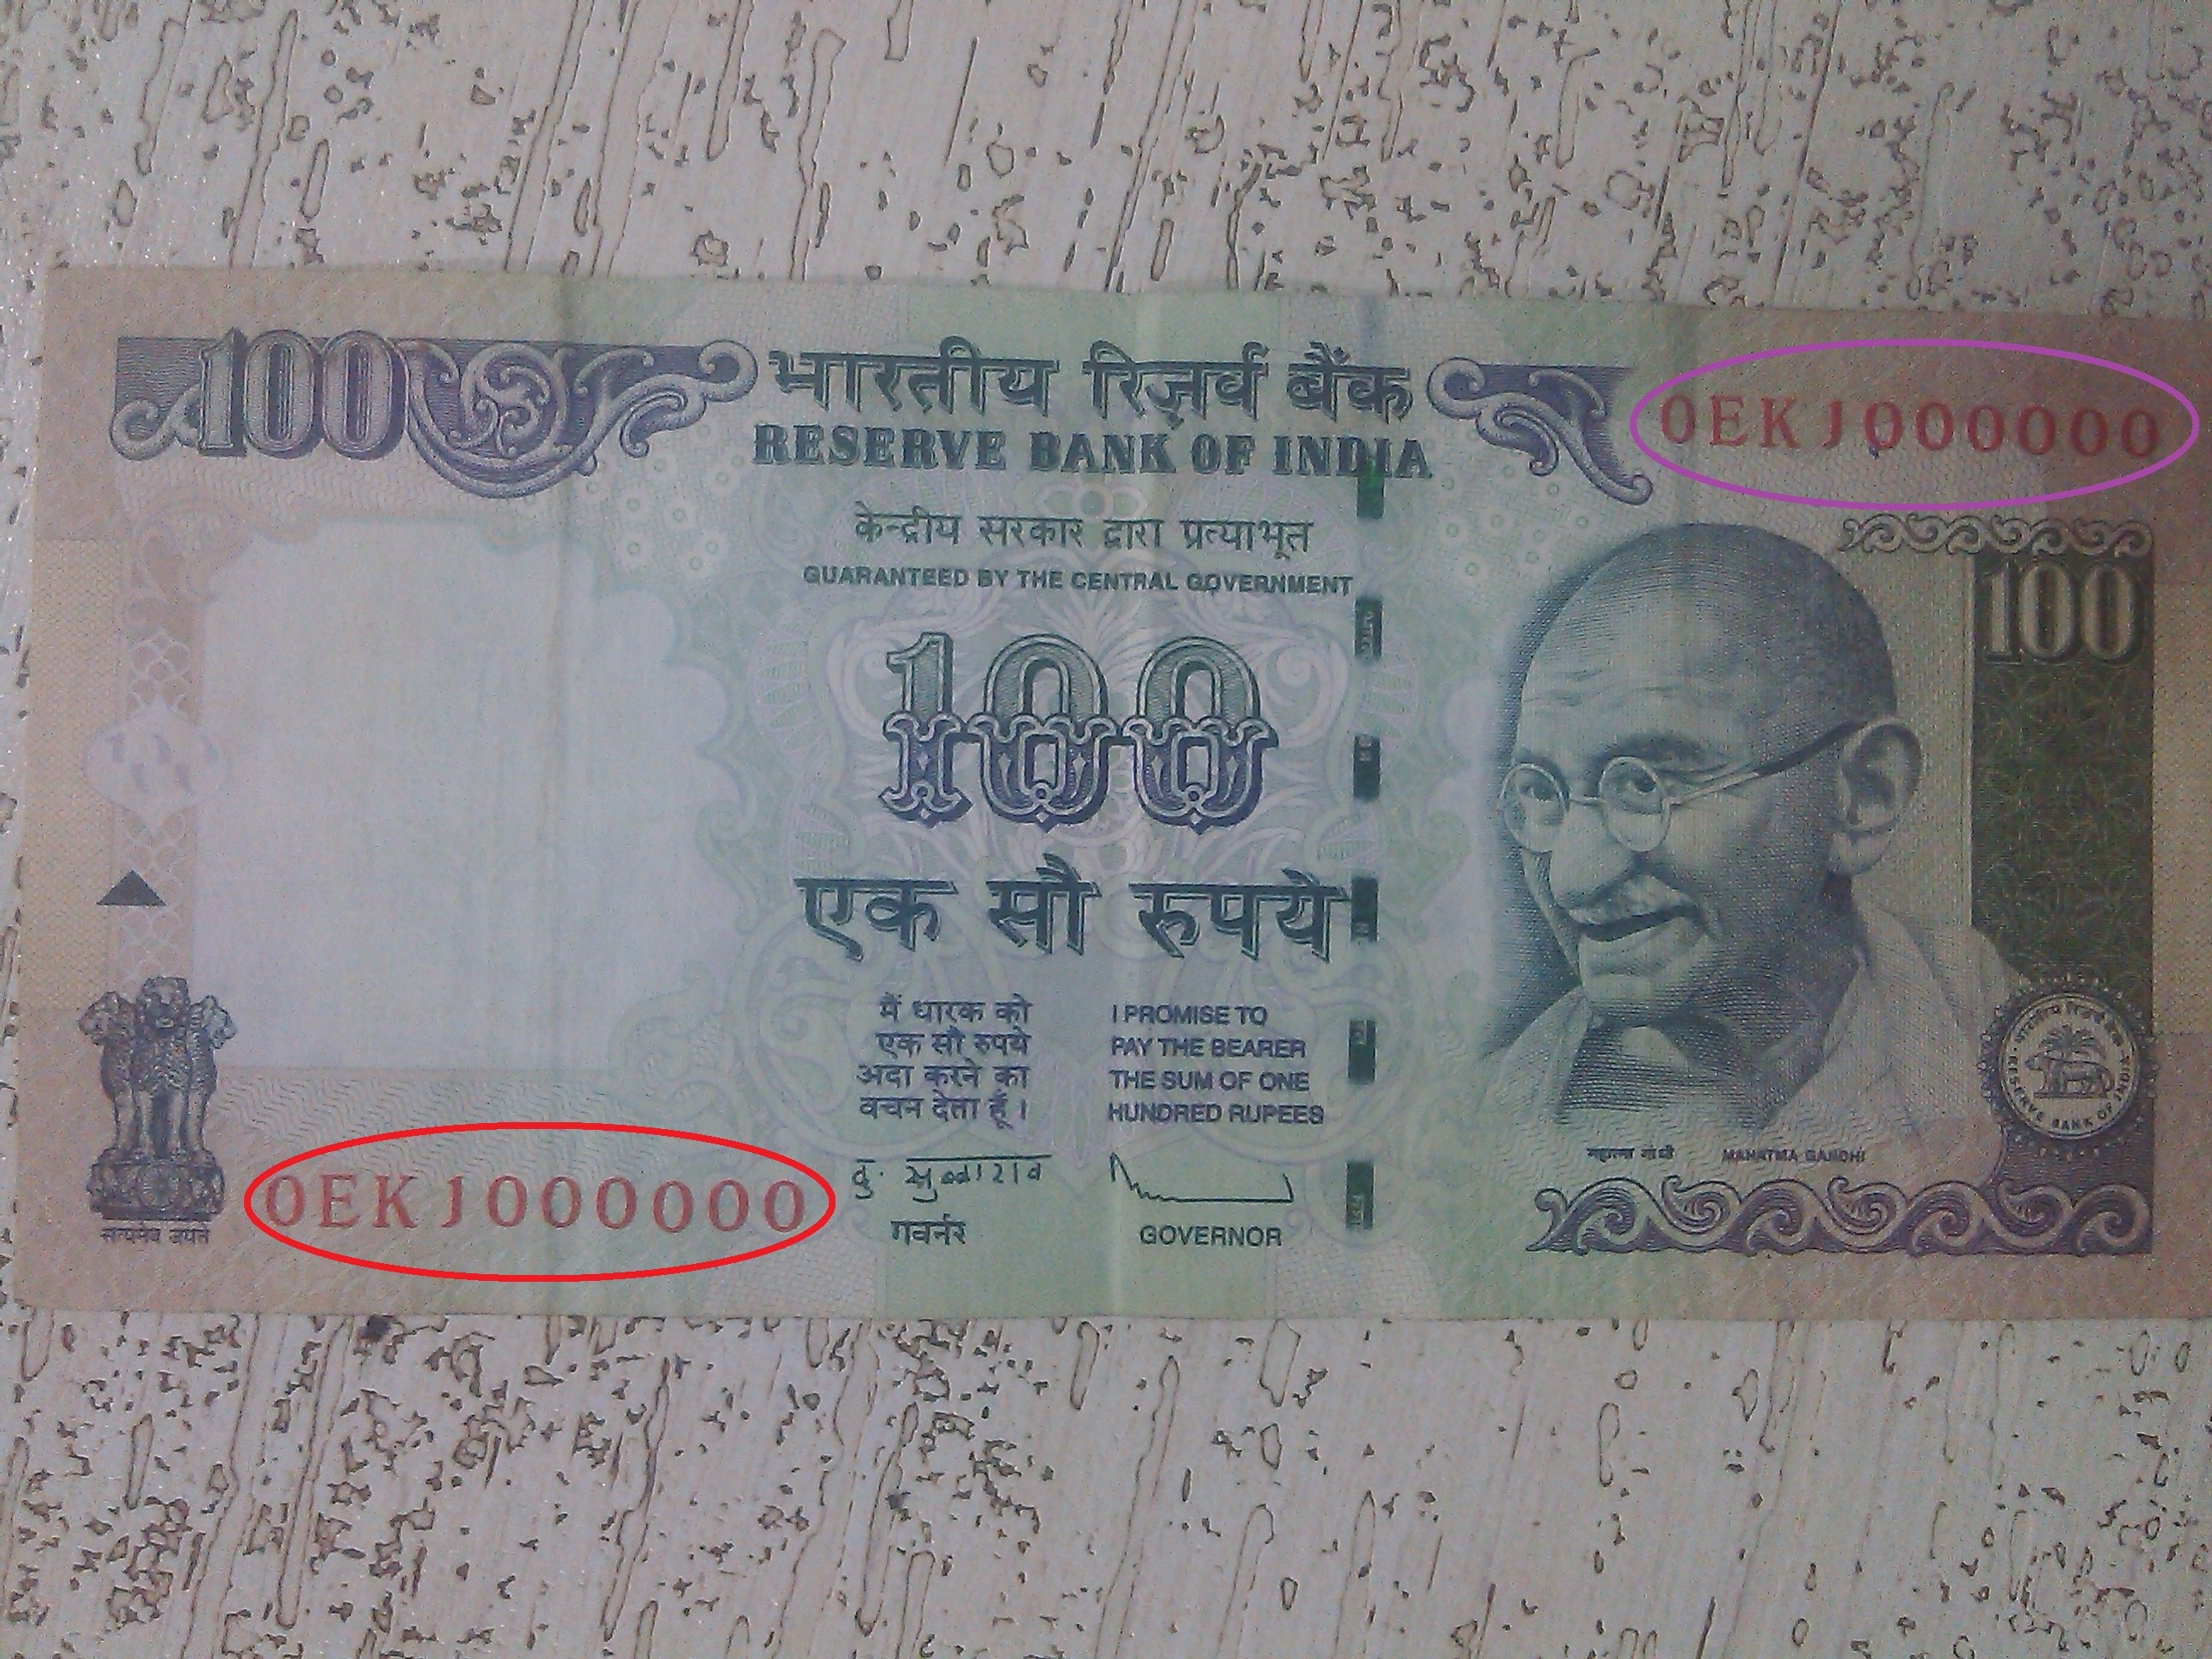 i hav 100 rs note with unique number ,shal i sell     - The